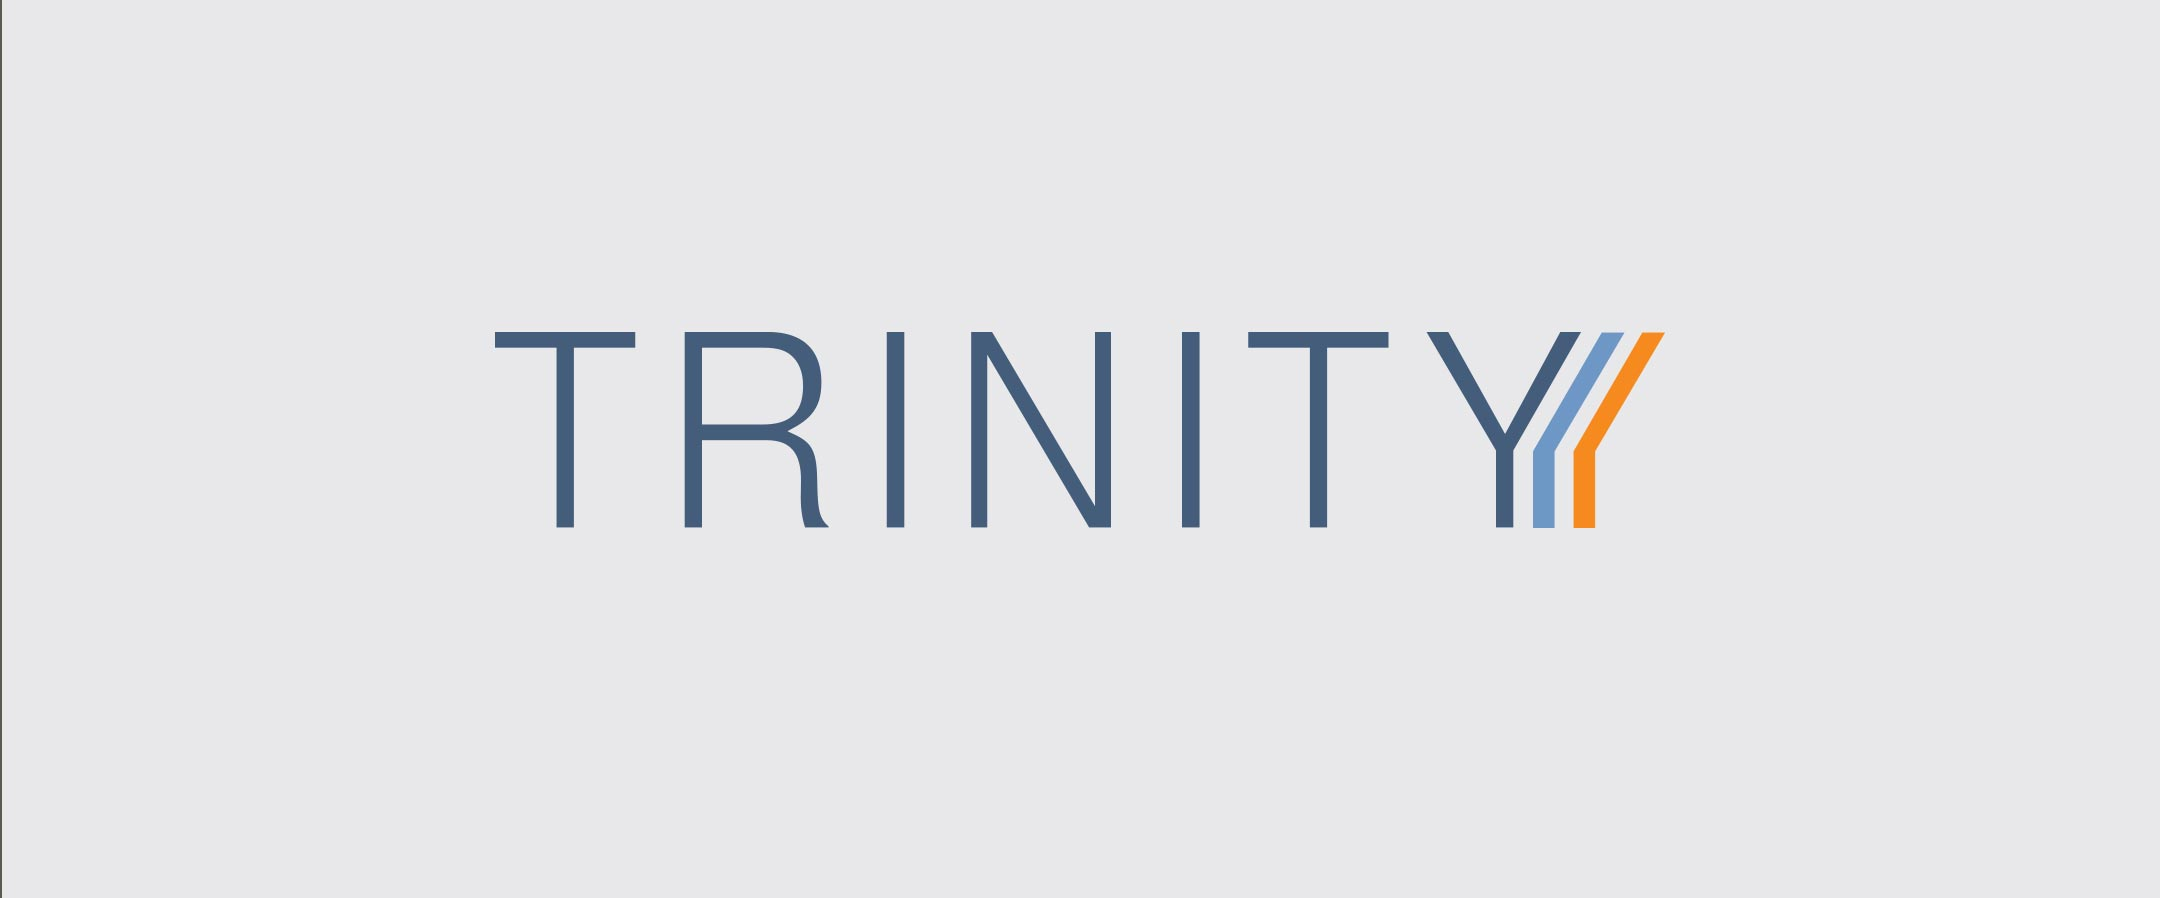 TRINITY header - TRINITY PROJECTS